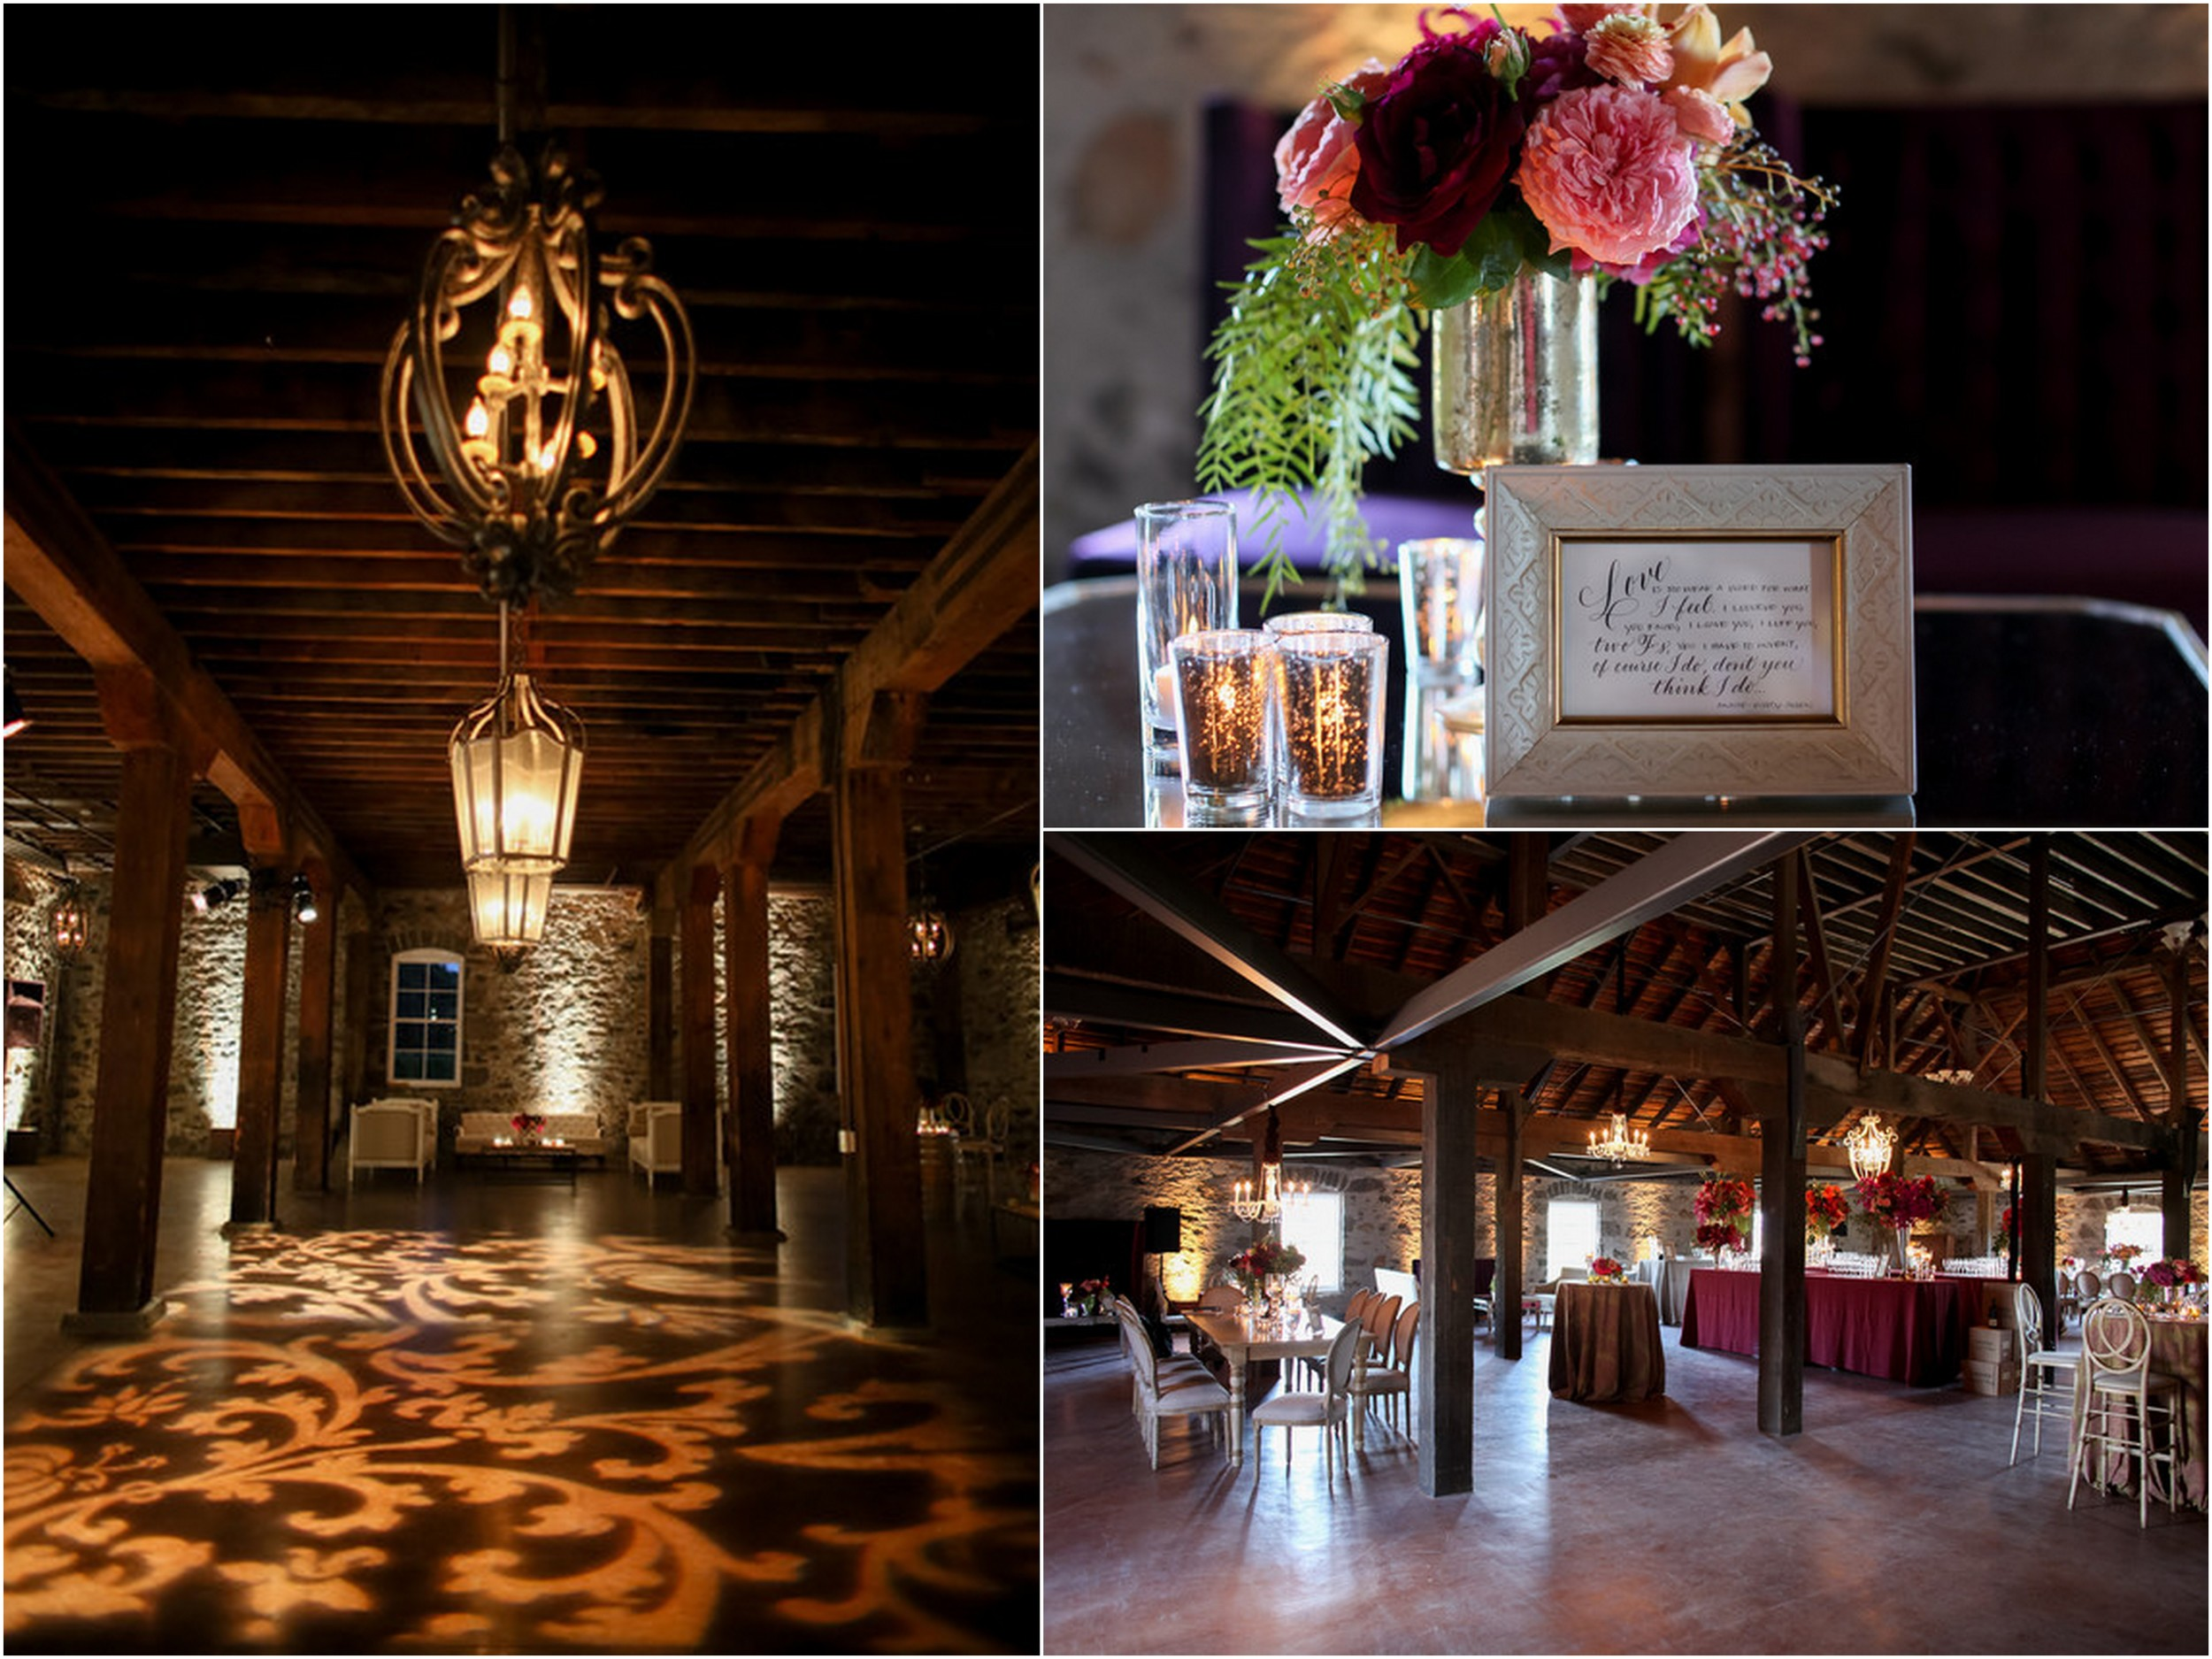 L'Relyea Events - Event Planning & Design - Trione Winery, CA   Wedding venues in Wine Country